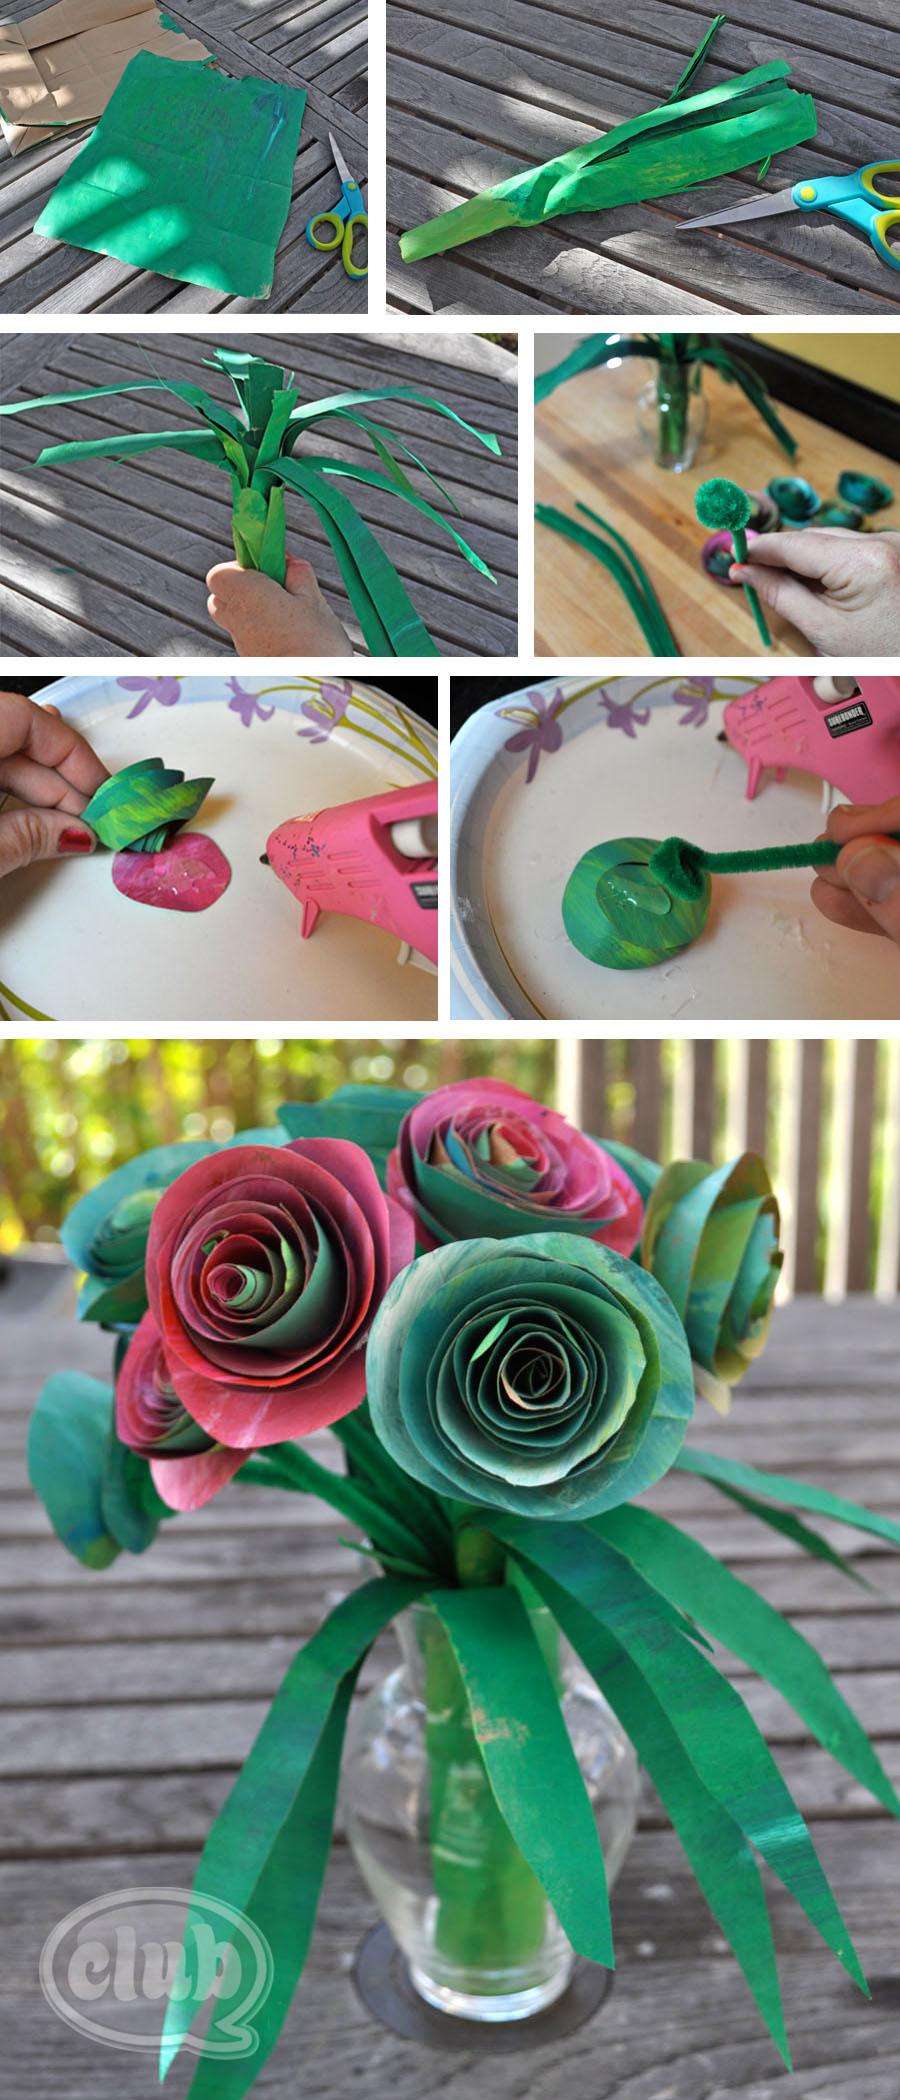 Upcycle An Ordinary Paper Bag Into A Beautiful Paper Rose Bouquet Craft